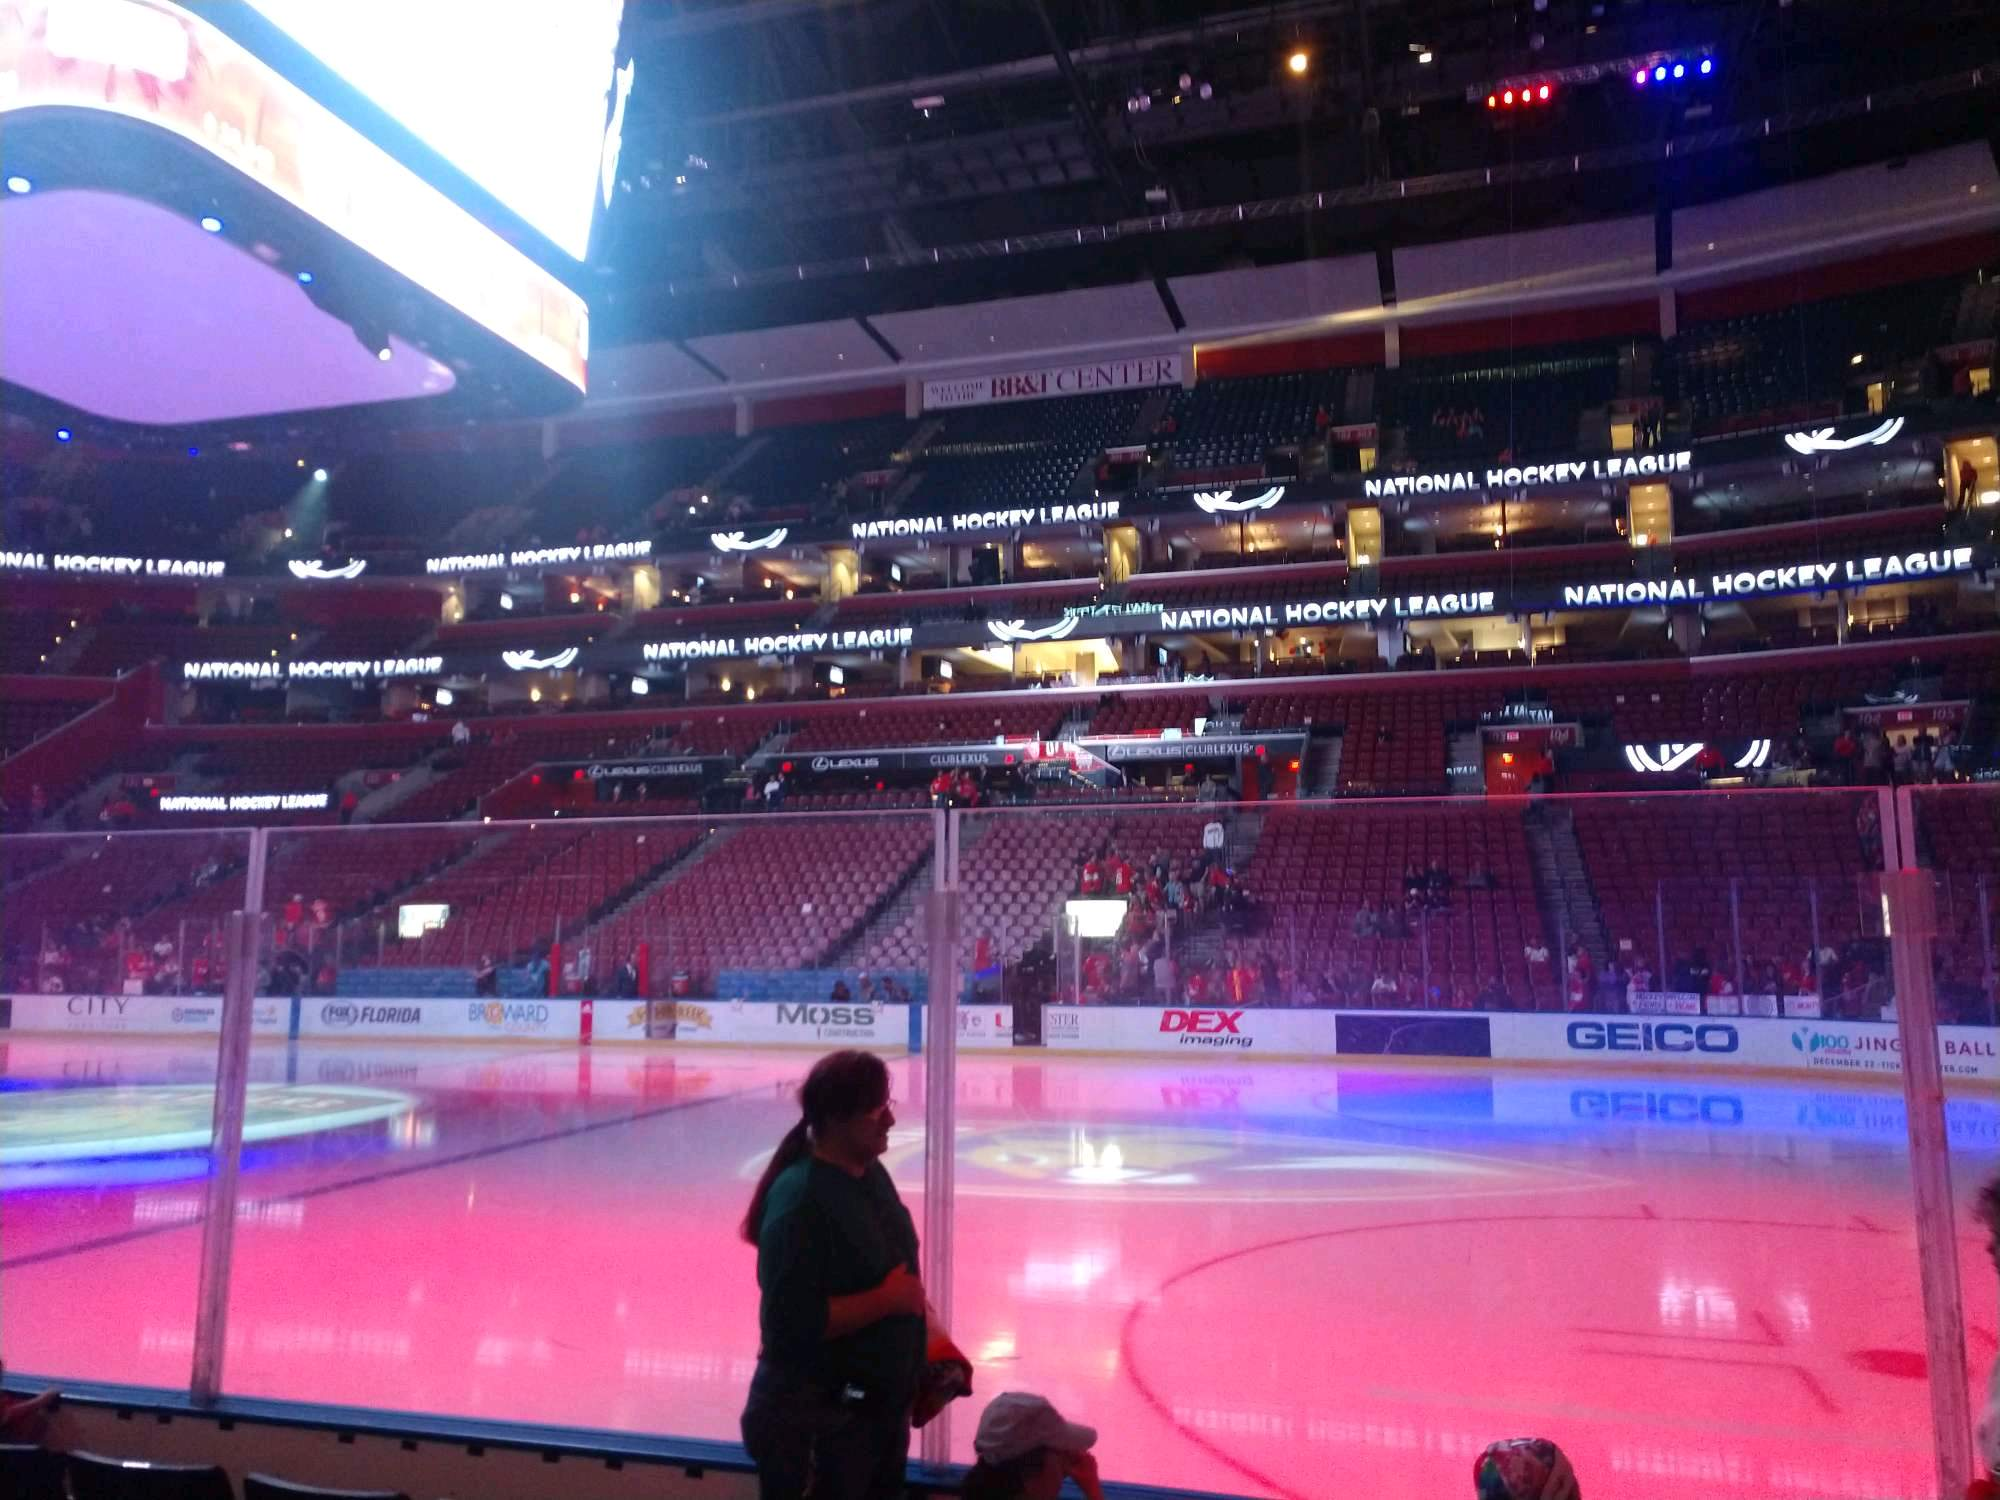 BB&T Center Section 116 Row 5 Seat 4